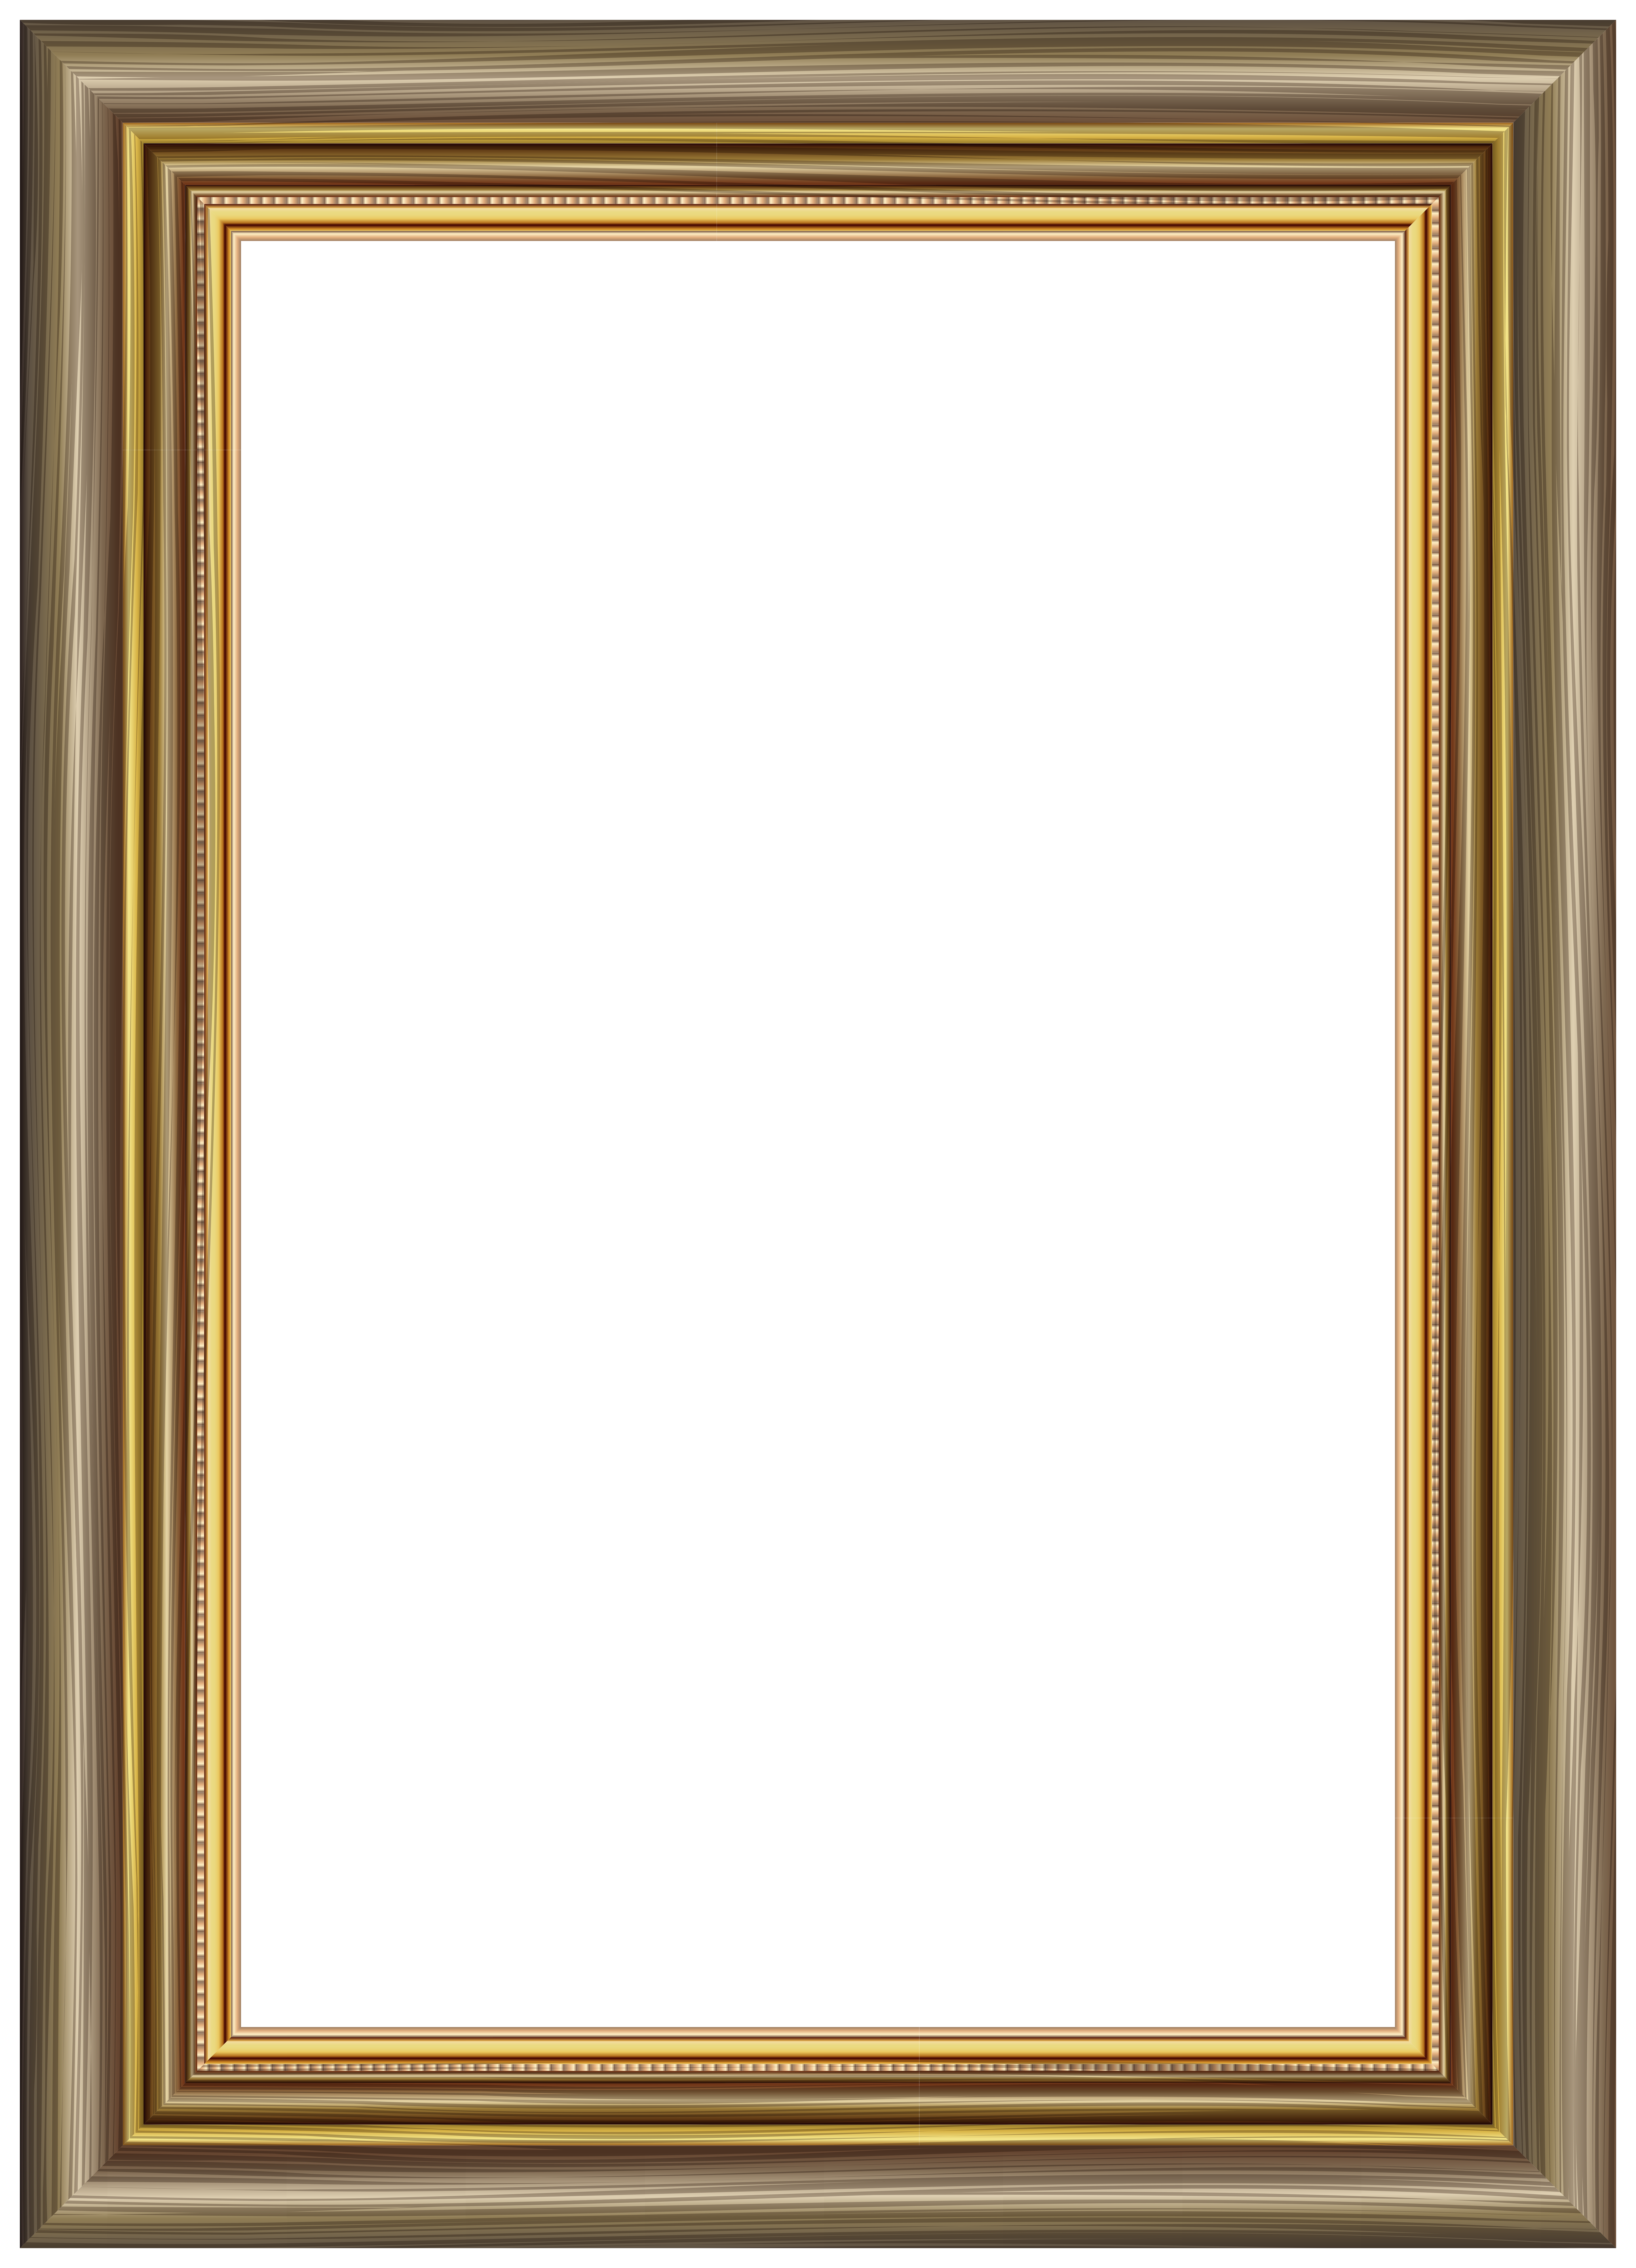 Vertical Frame Png Clipart Gallery Yopriceville High Quality Images And Transparent Png Free Clipart Vertical Frames Frame Picture Frames